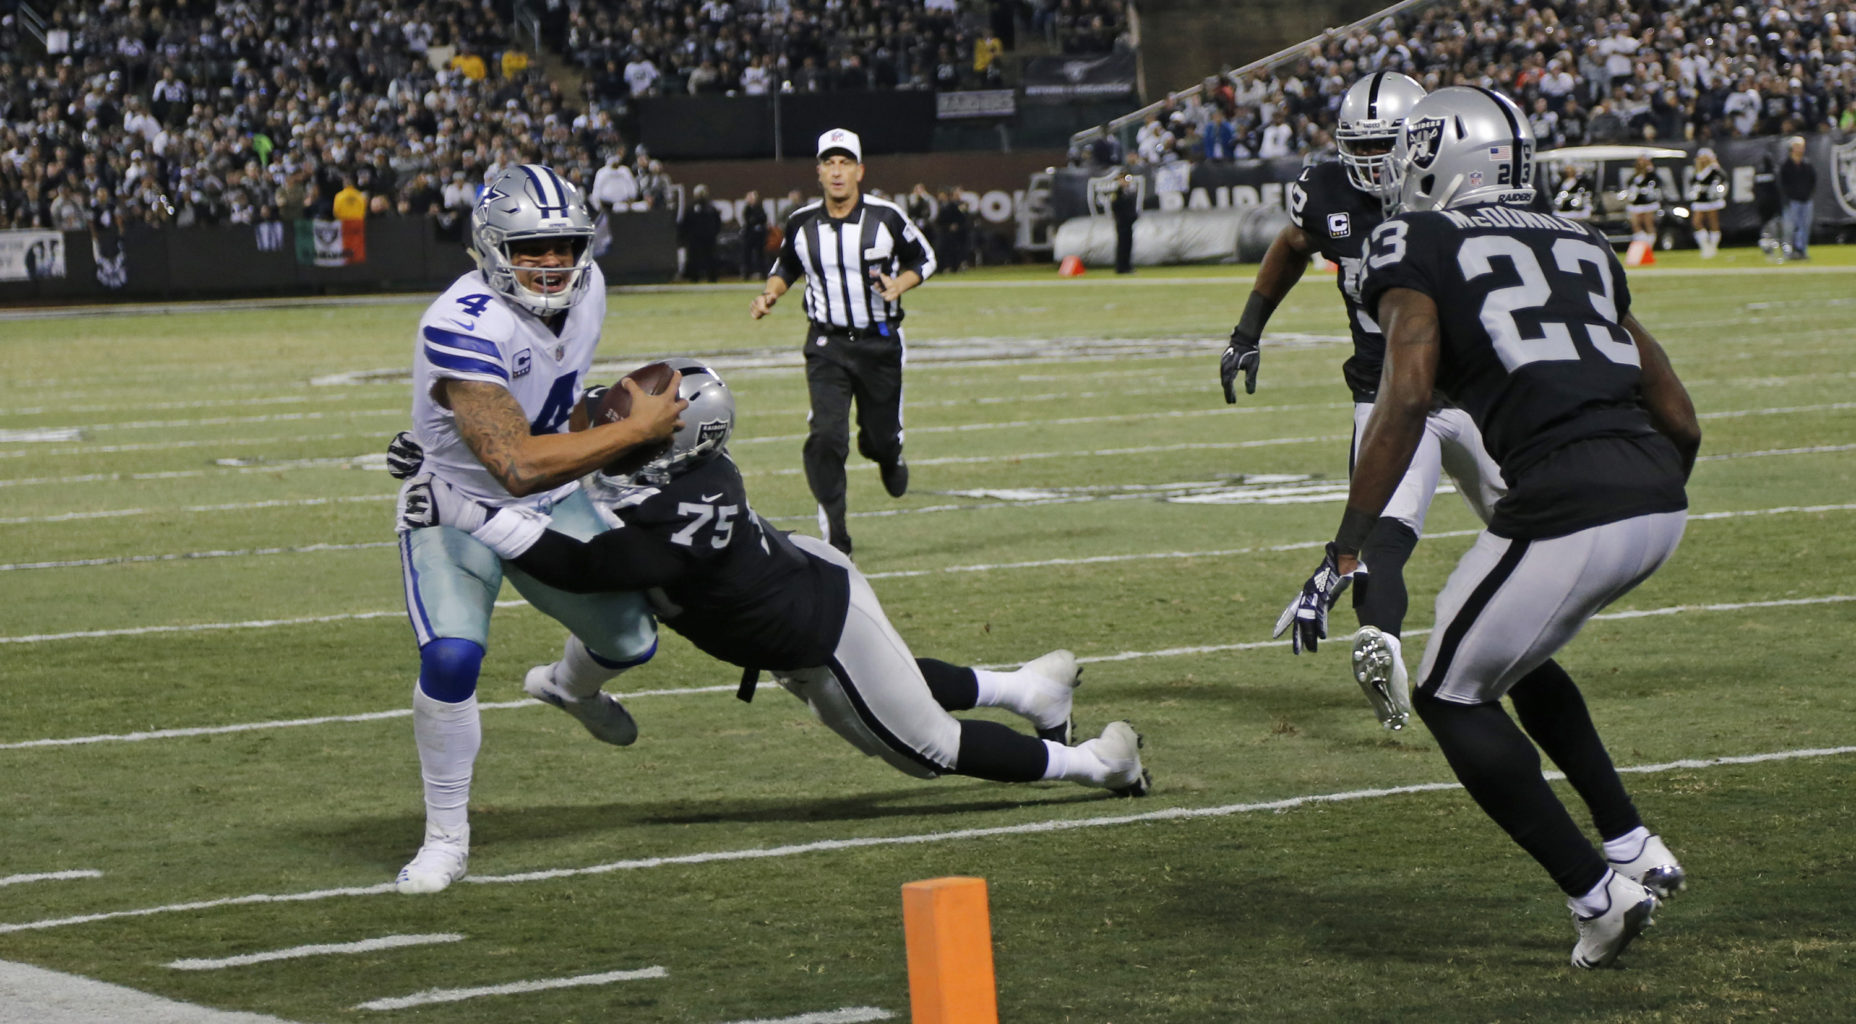 Dallas Cowboys quarterback Dak Prescott (4) scrambles to the four yard line as he cannot find a receiver in the second quarter against the Oakland Raiders on Sunday, Dec. 17, 2017 at Oakland-Alameda County Coliseum in Oakland, Calif. (Rodger Mallison/Fort Worth Star-Telegram/TNS)